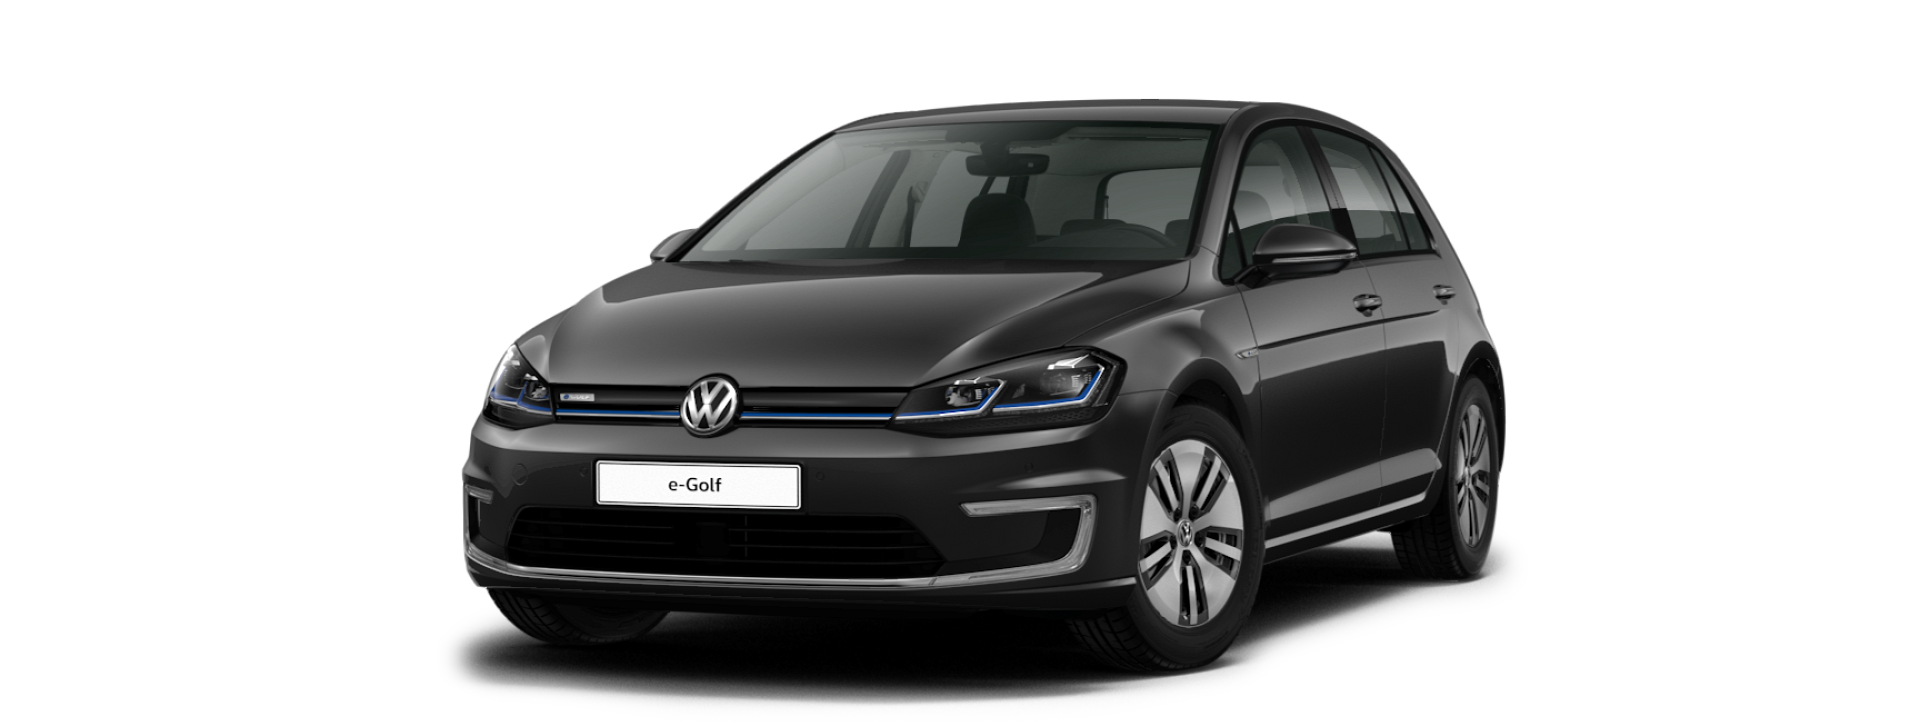 forum volkswagen e golf qui mont un attelage sur une e golf volkswagen. Black Bedroom Furniture Sets. Home Design Ideas